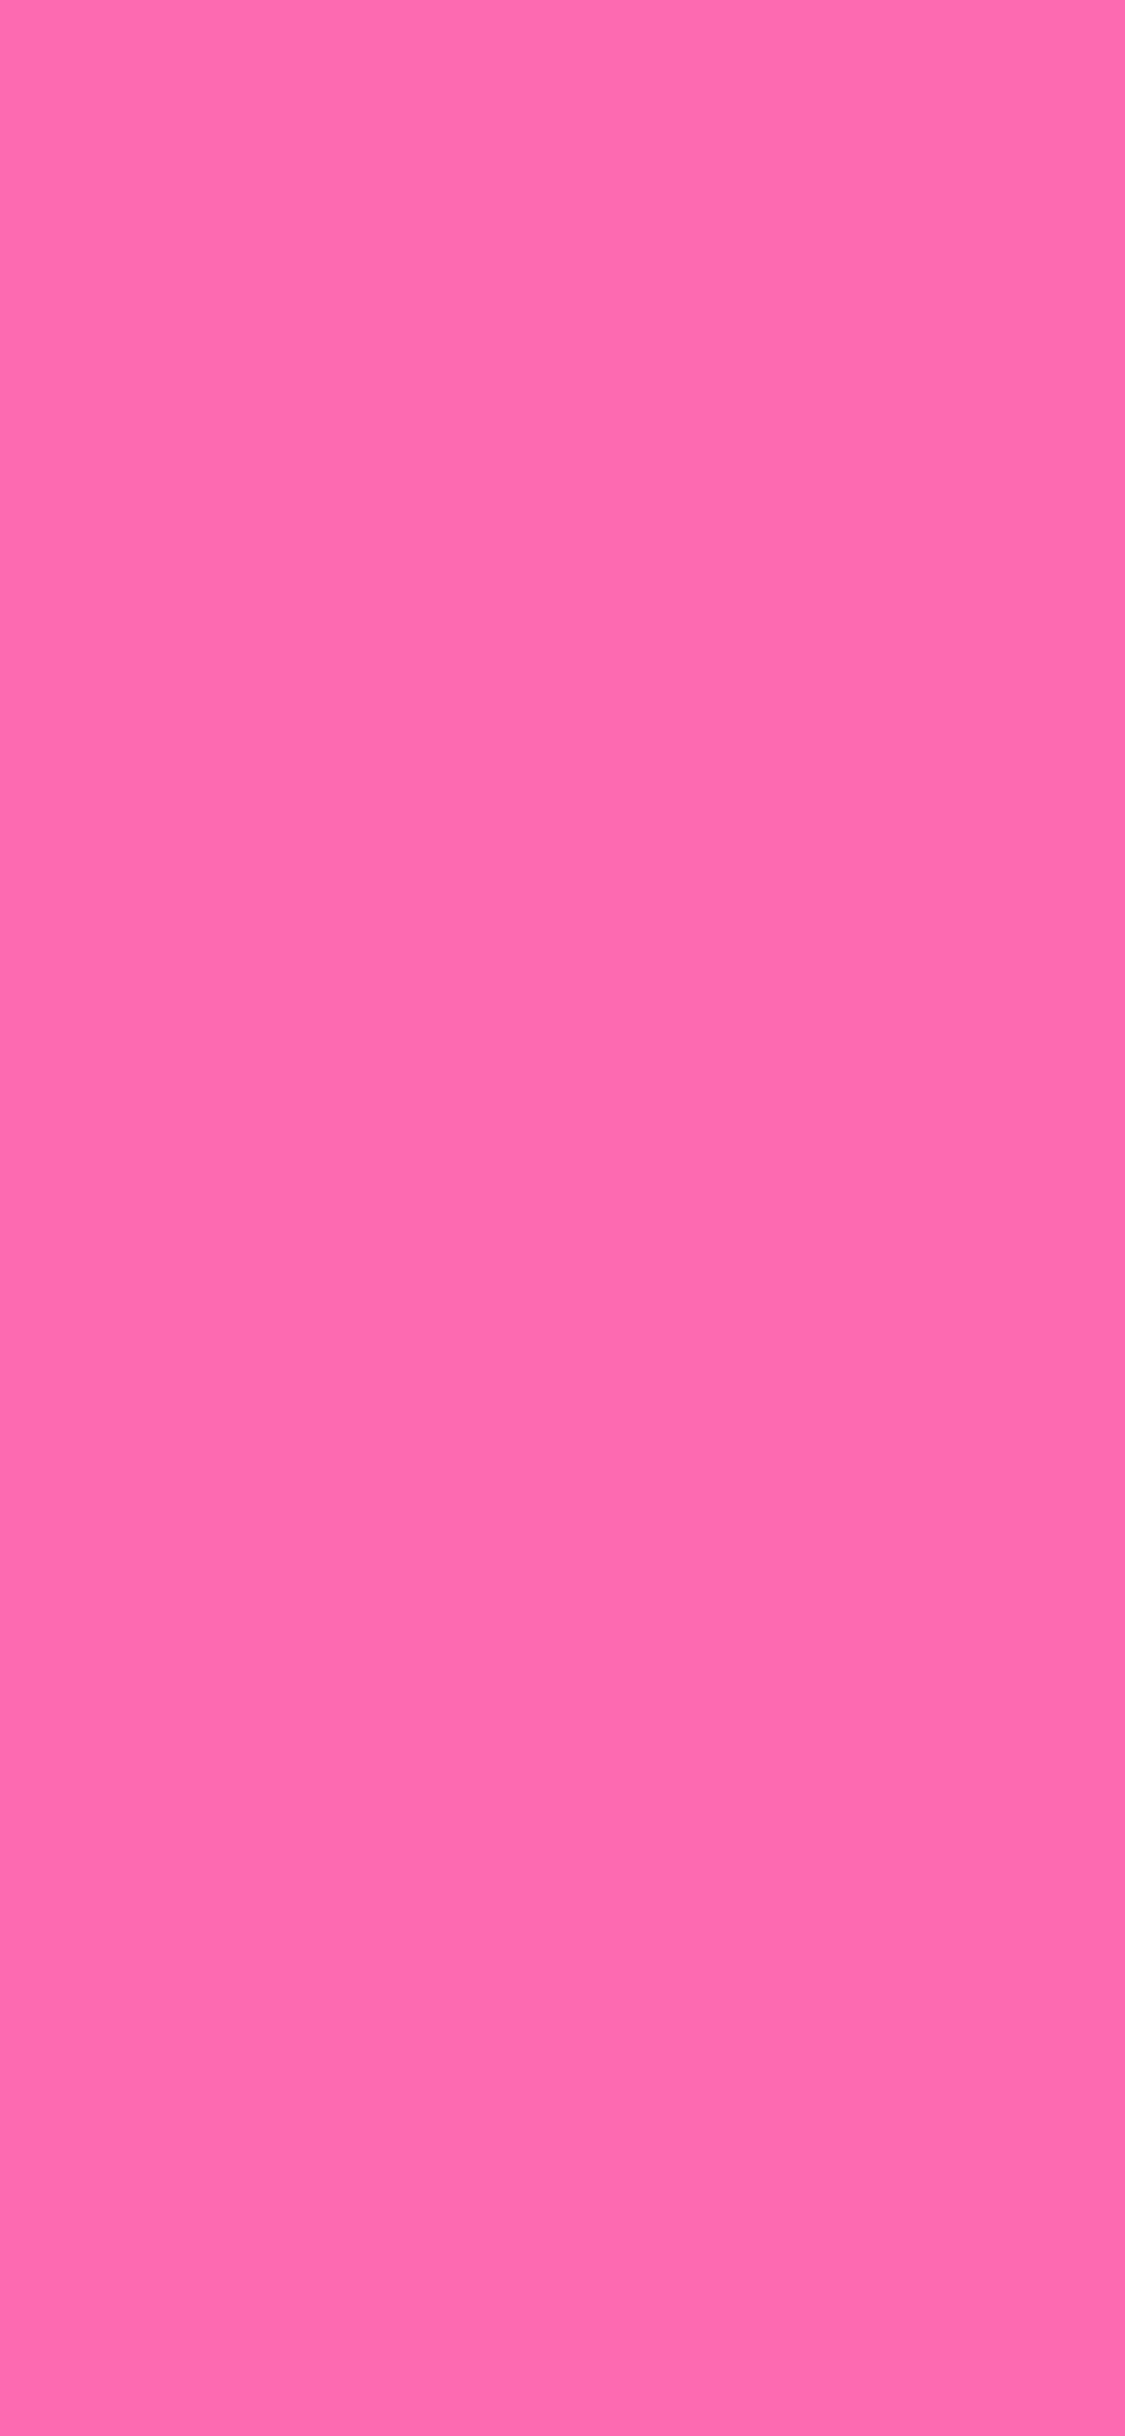 1125x2436 Hot Pink Solid Color Background